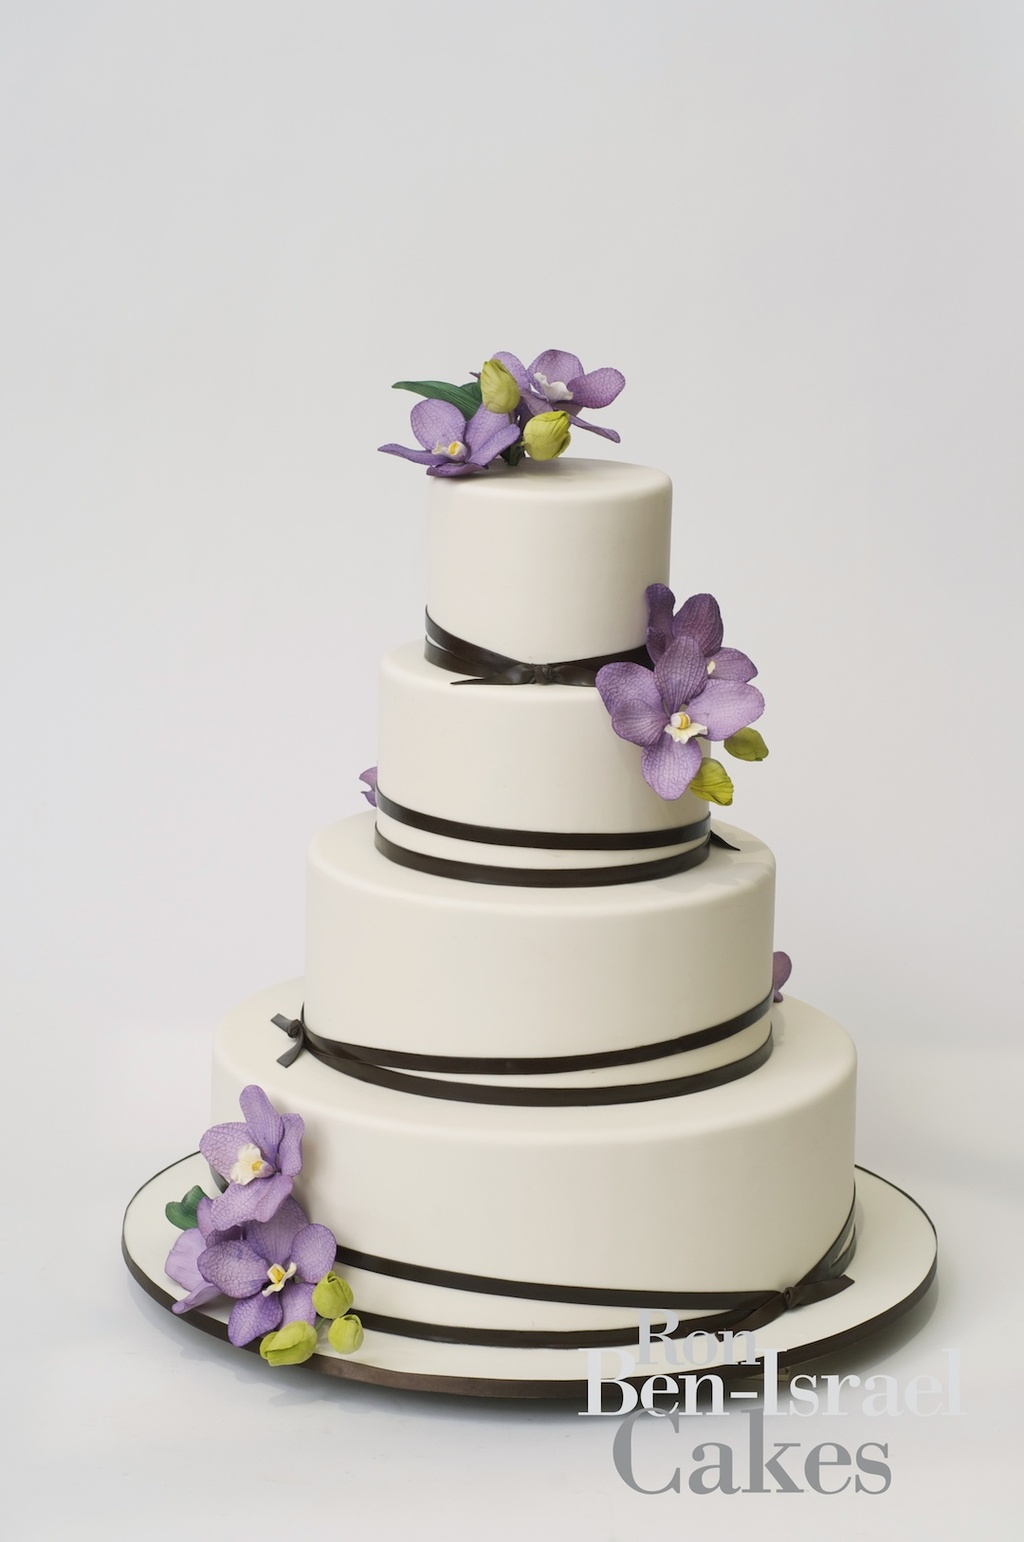 Wedding-cake-inspiration-ron-ben-isreal-wedding-cakes-white-with-chocolate-brown-ribbon-lavendar-orchids.original.full